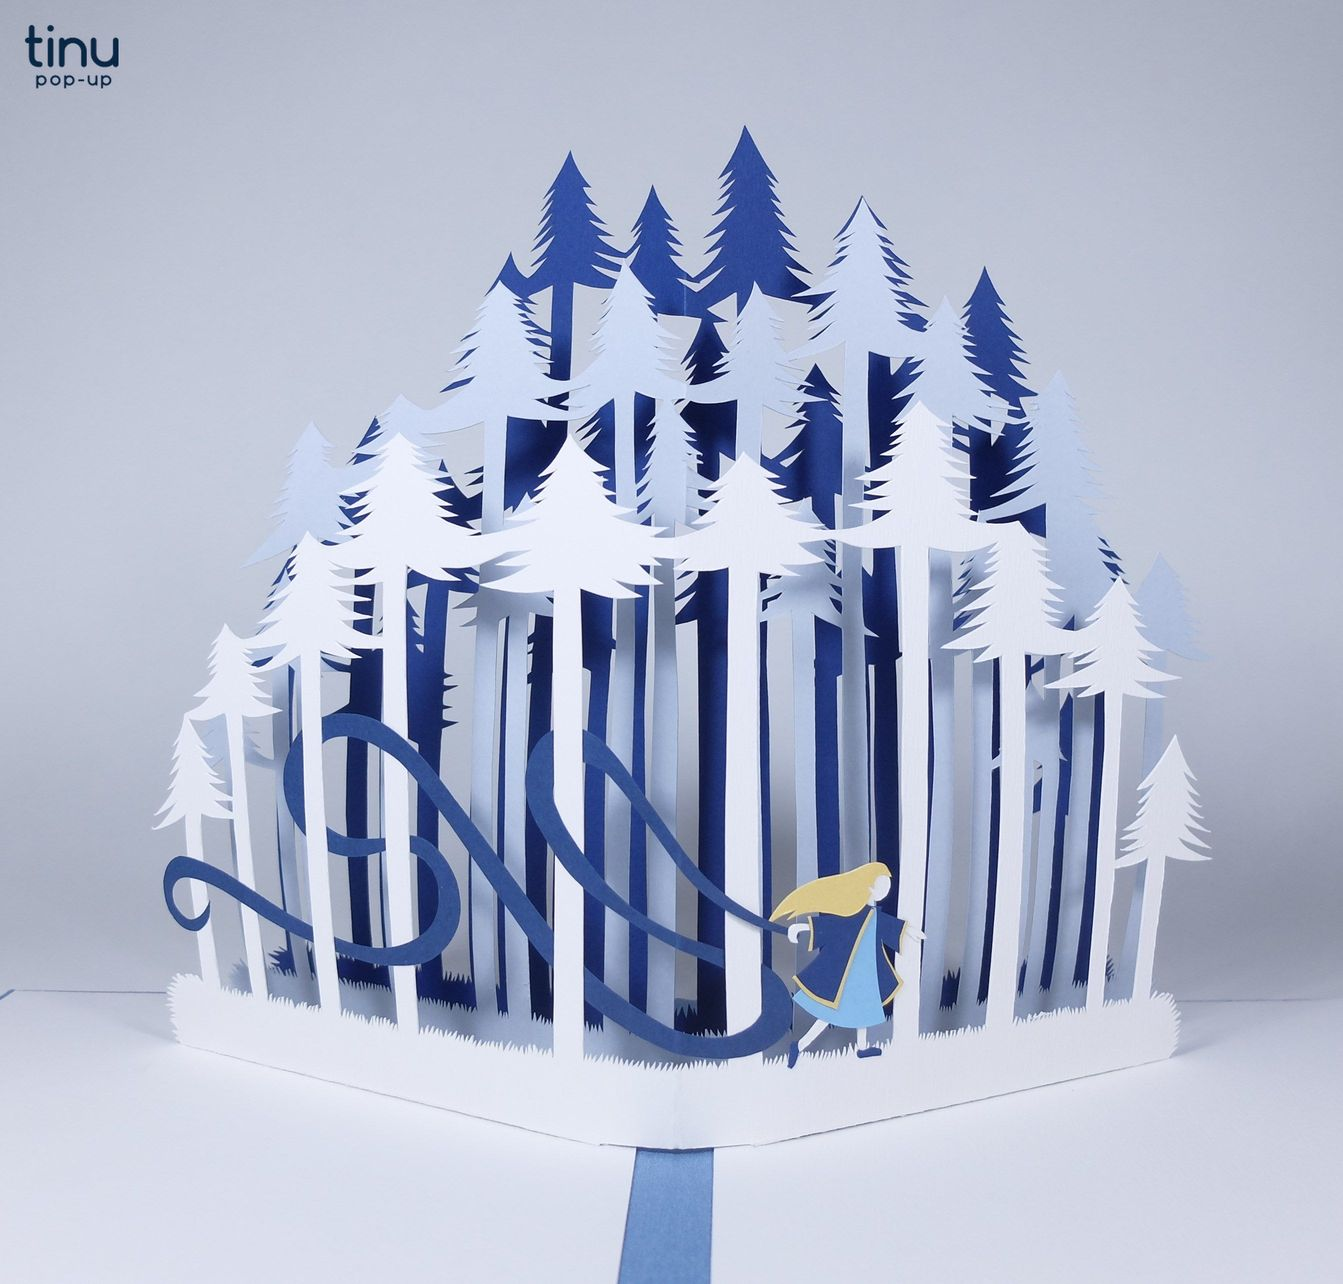 tinu site tinu pop up baba yaga russian tale papier paper 3D card popup